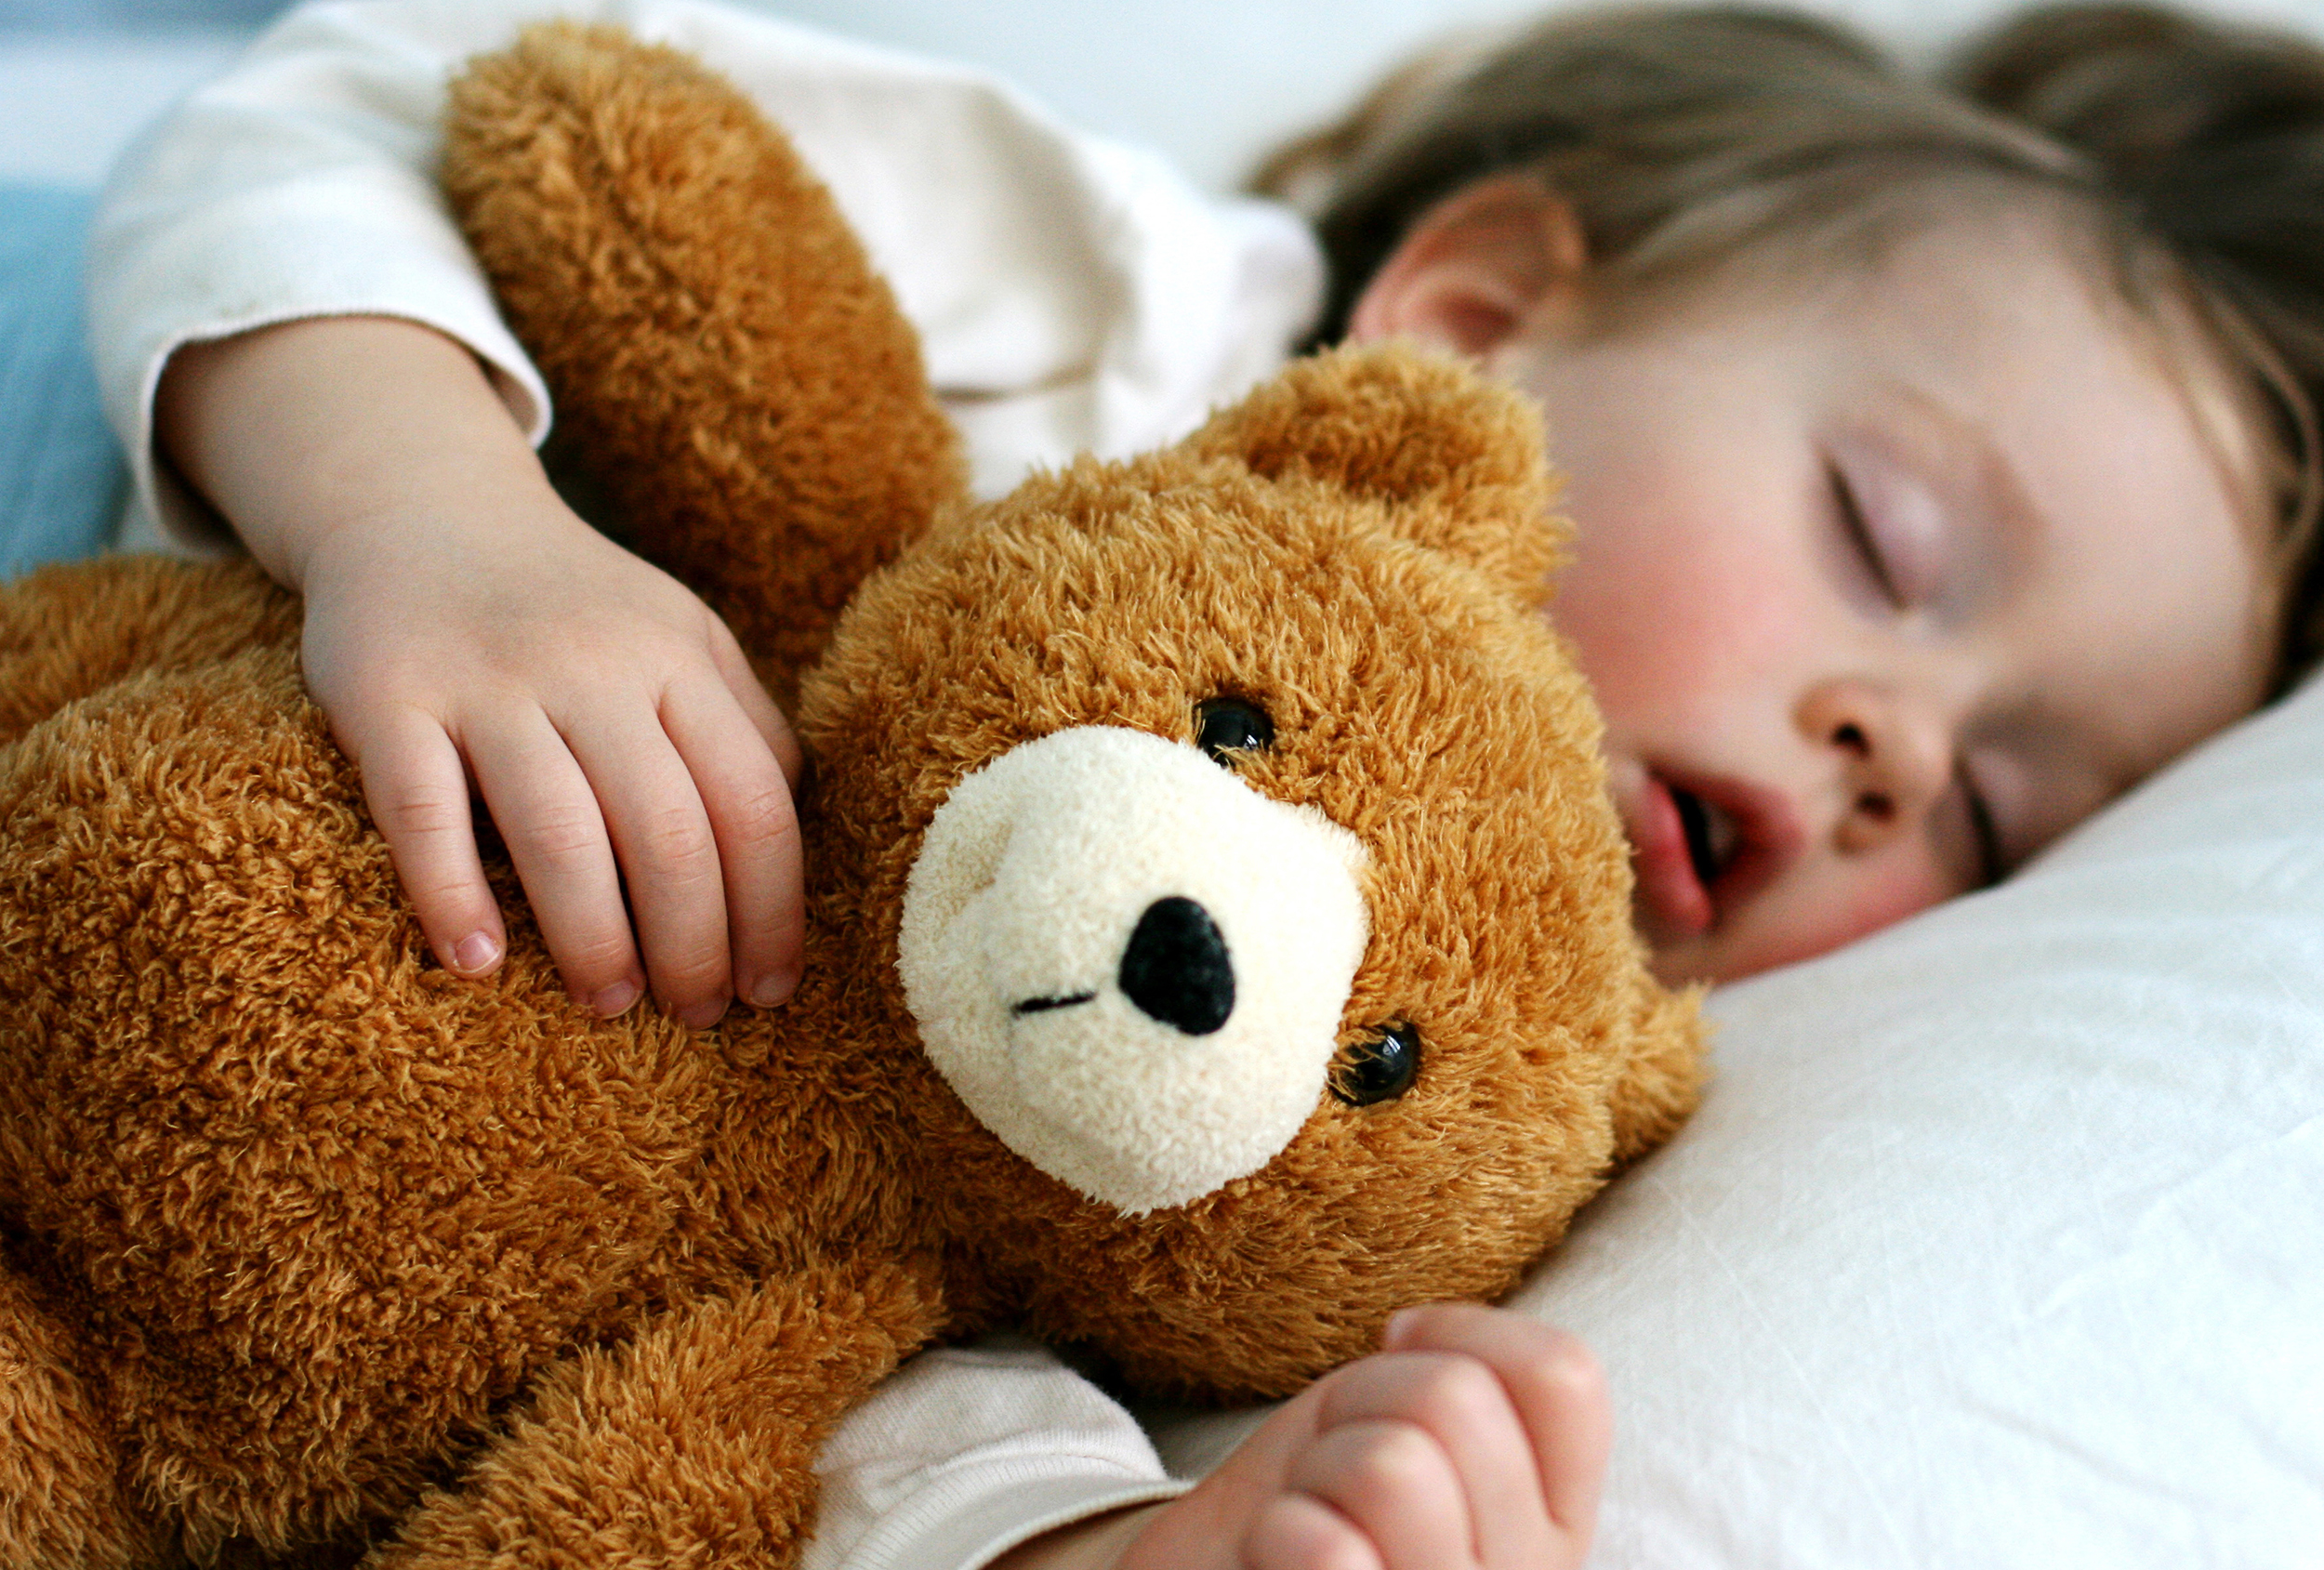 Sleeping With A Stuffed Animal As An Adult Is Ok Experts Say